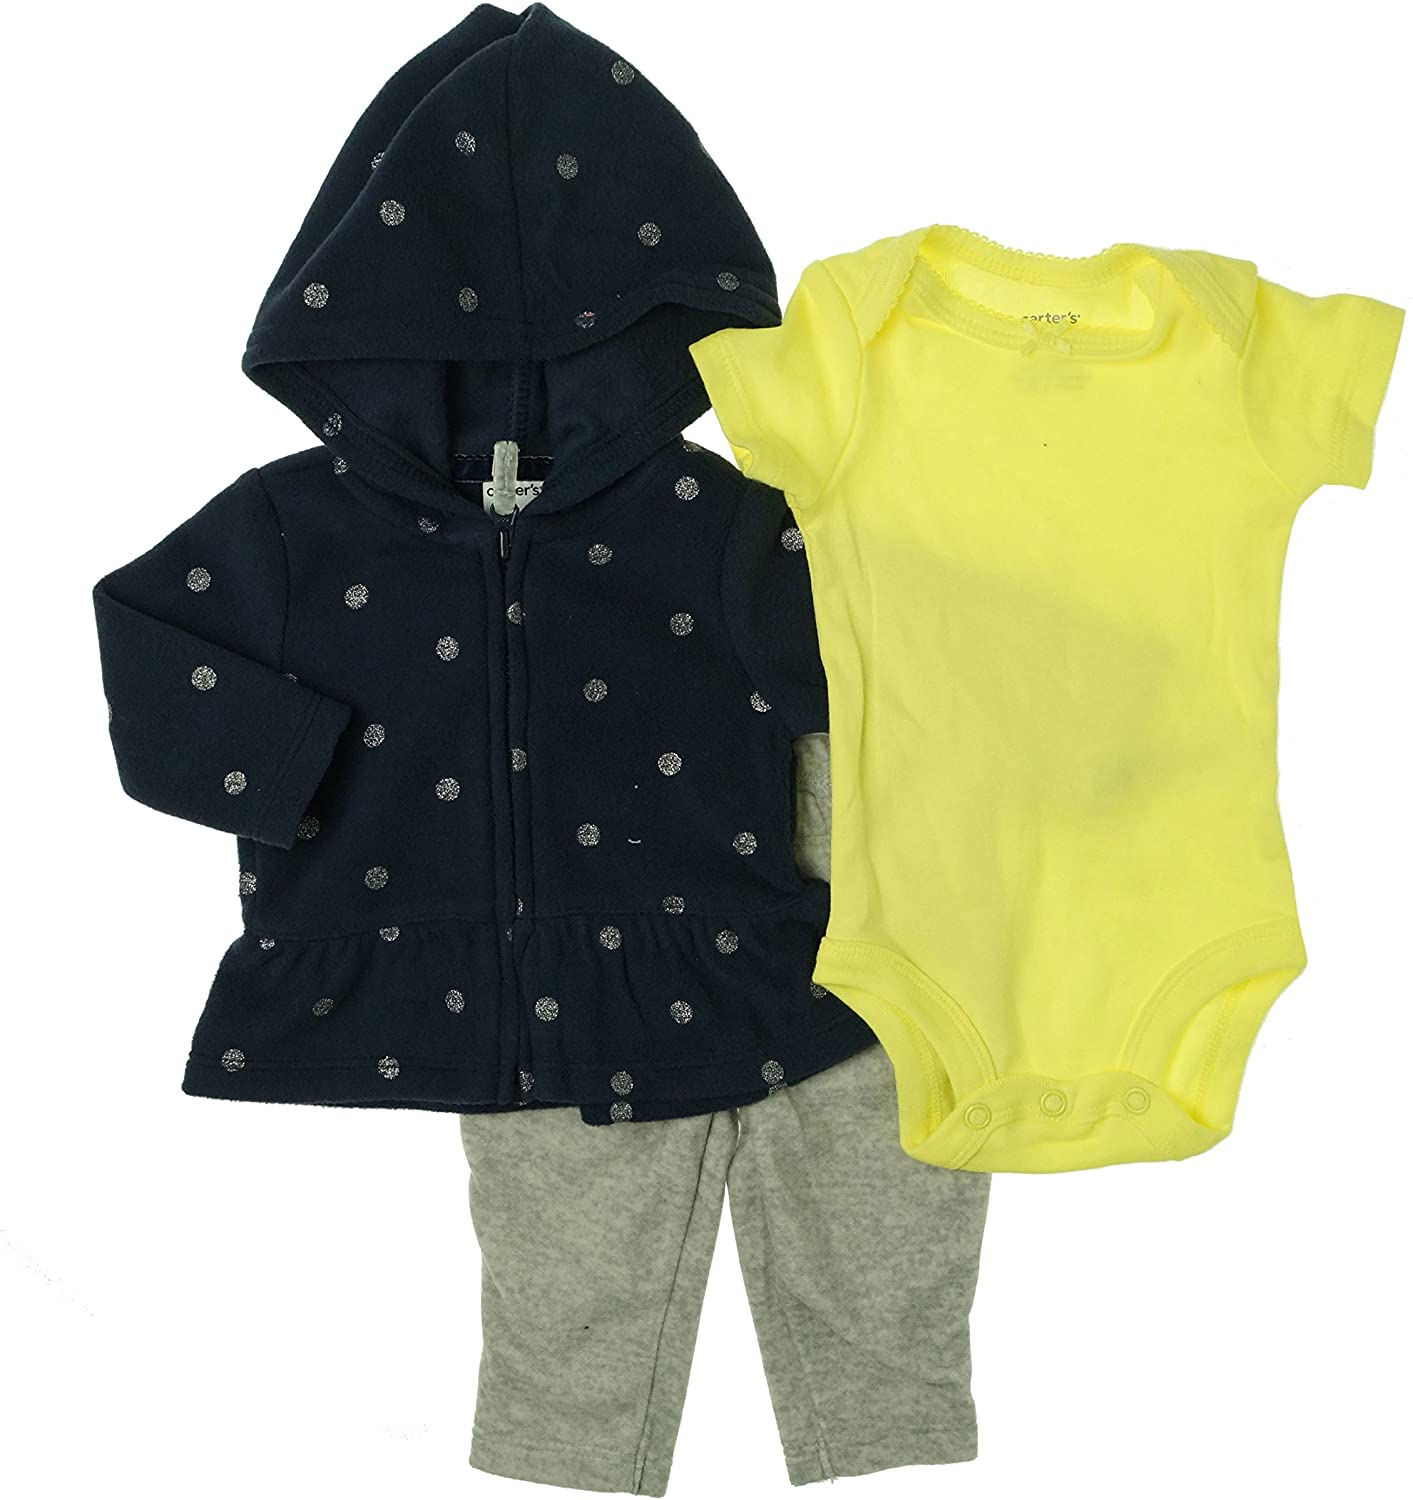 Carters Baby Girl Polka Dot Three Piece Set NB Blue/Gray